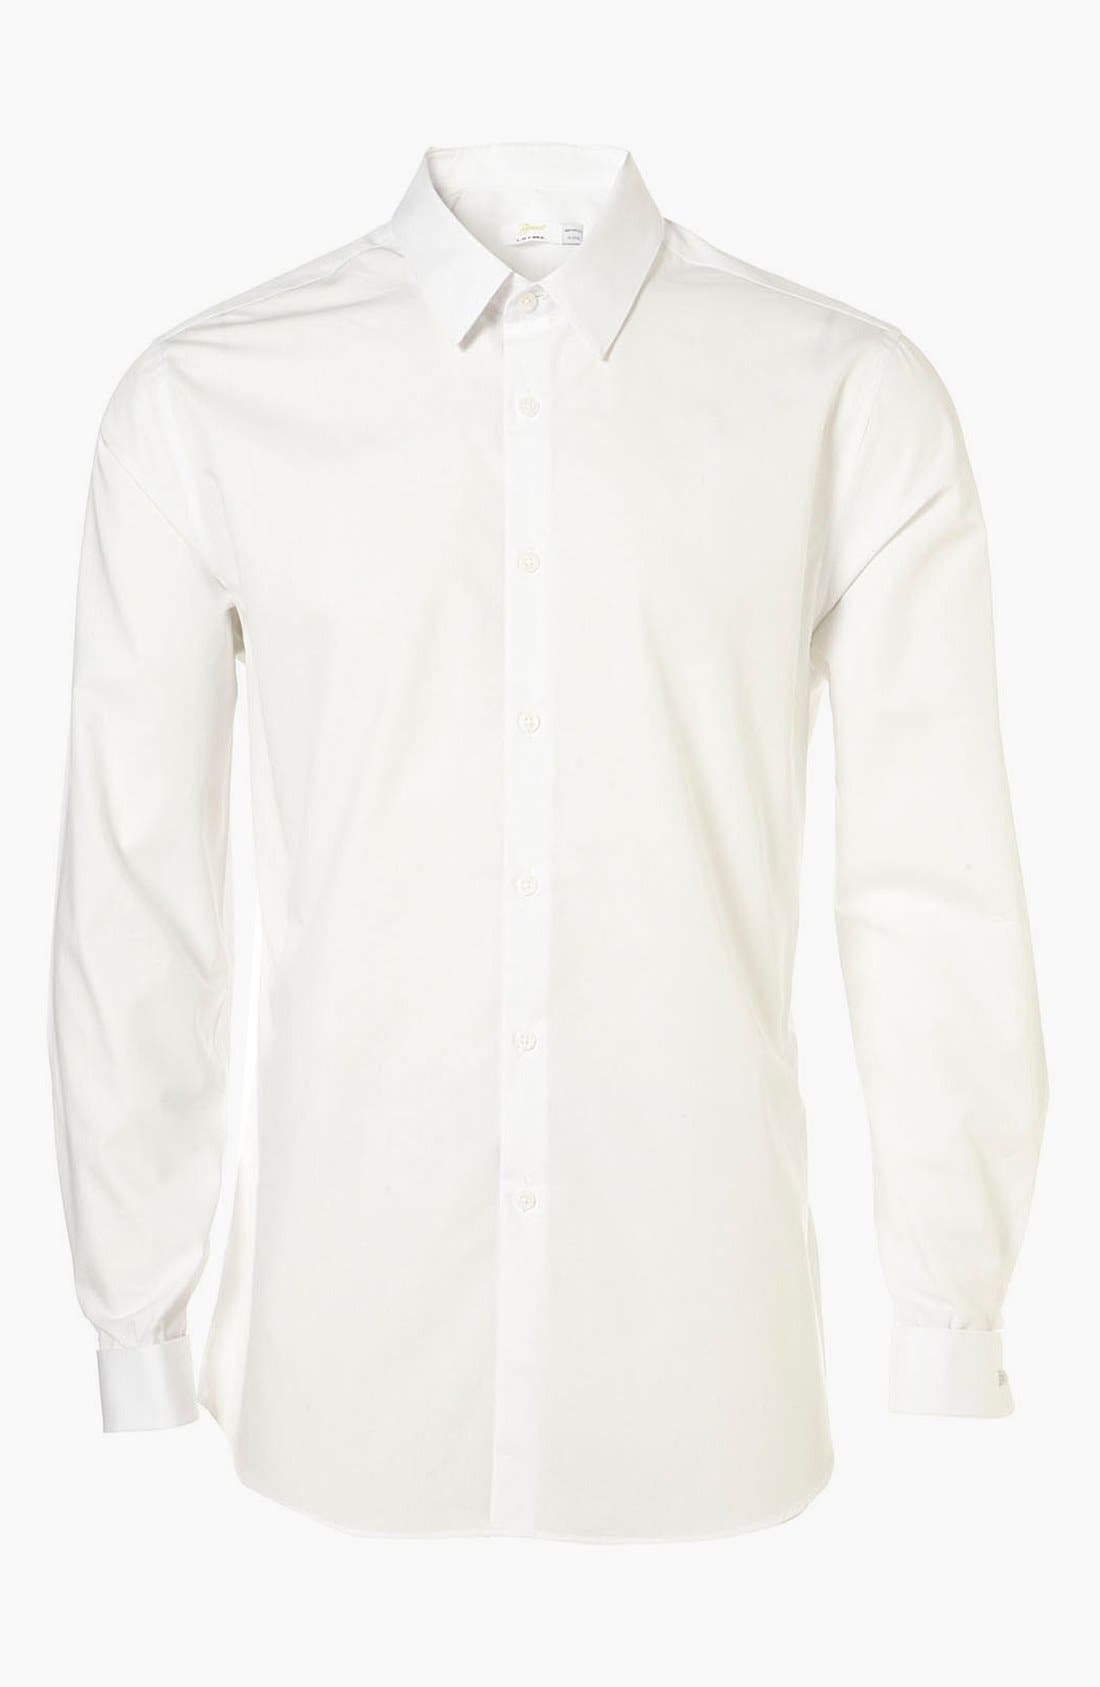 Alternate Image 1 Selected - Topman 'Smart' Slim Fit Dress Shirt